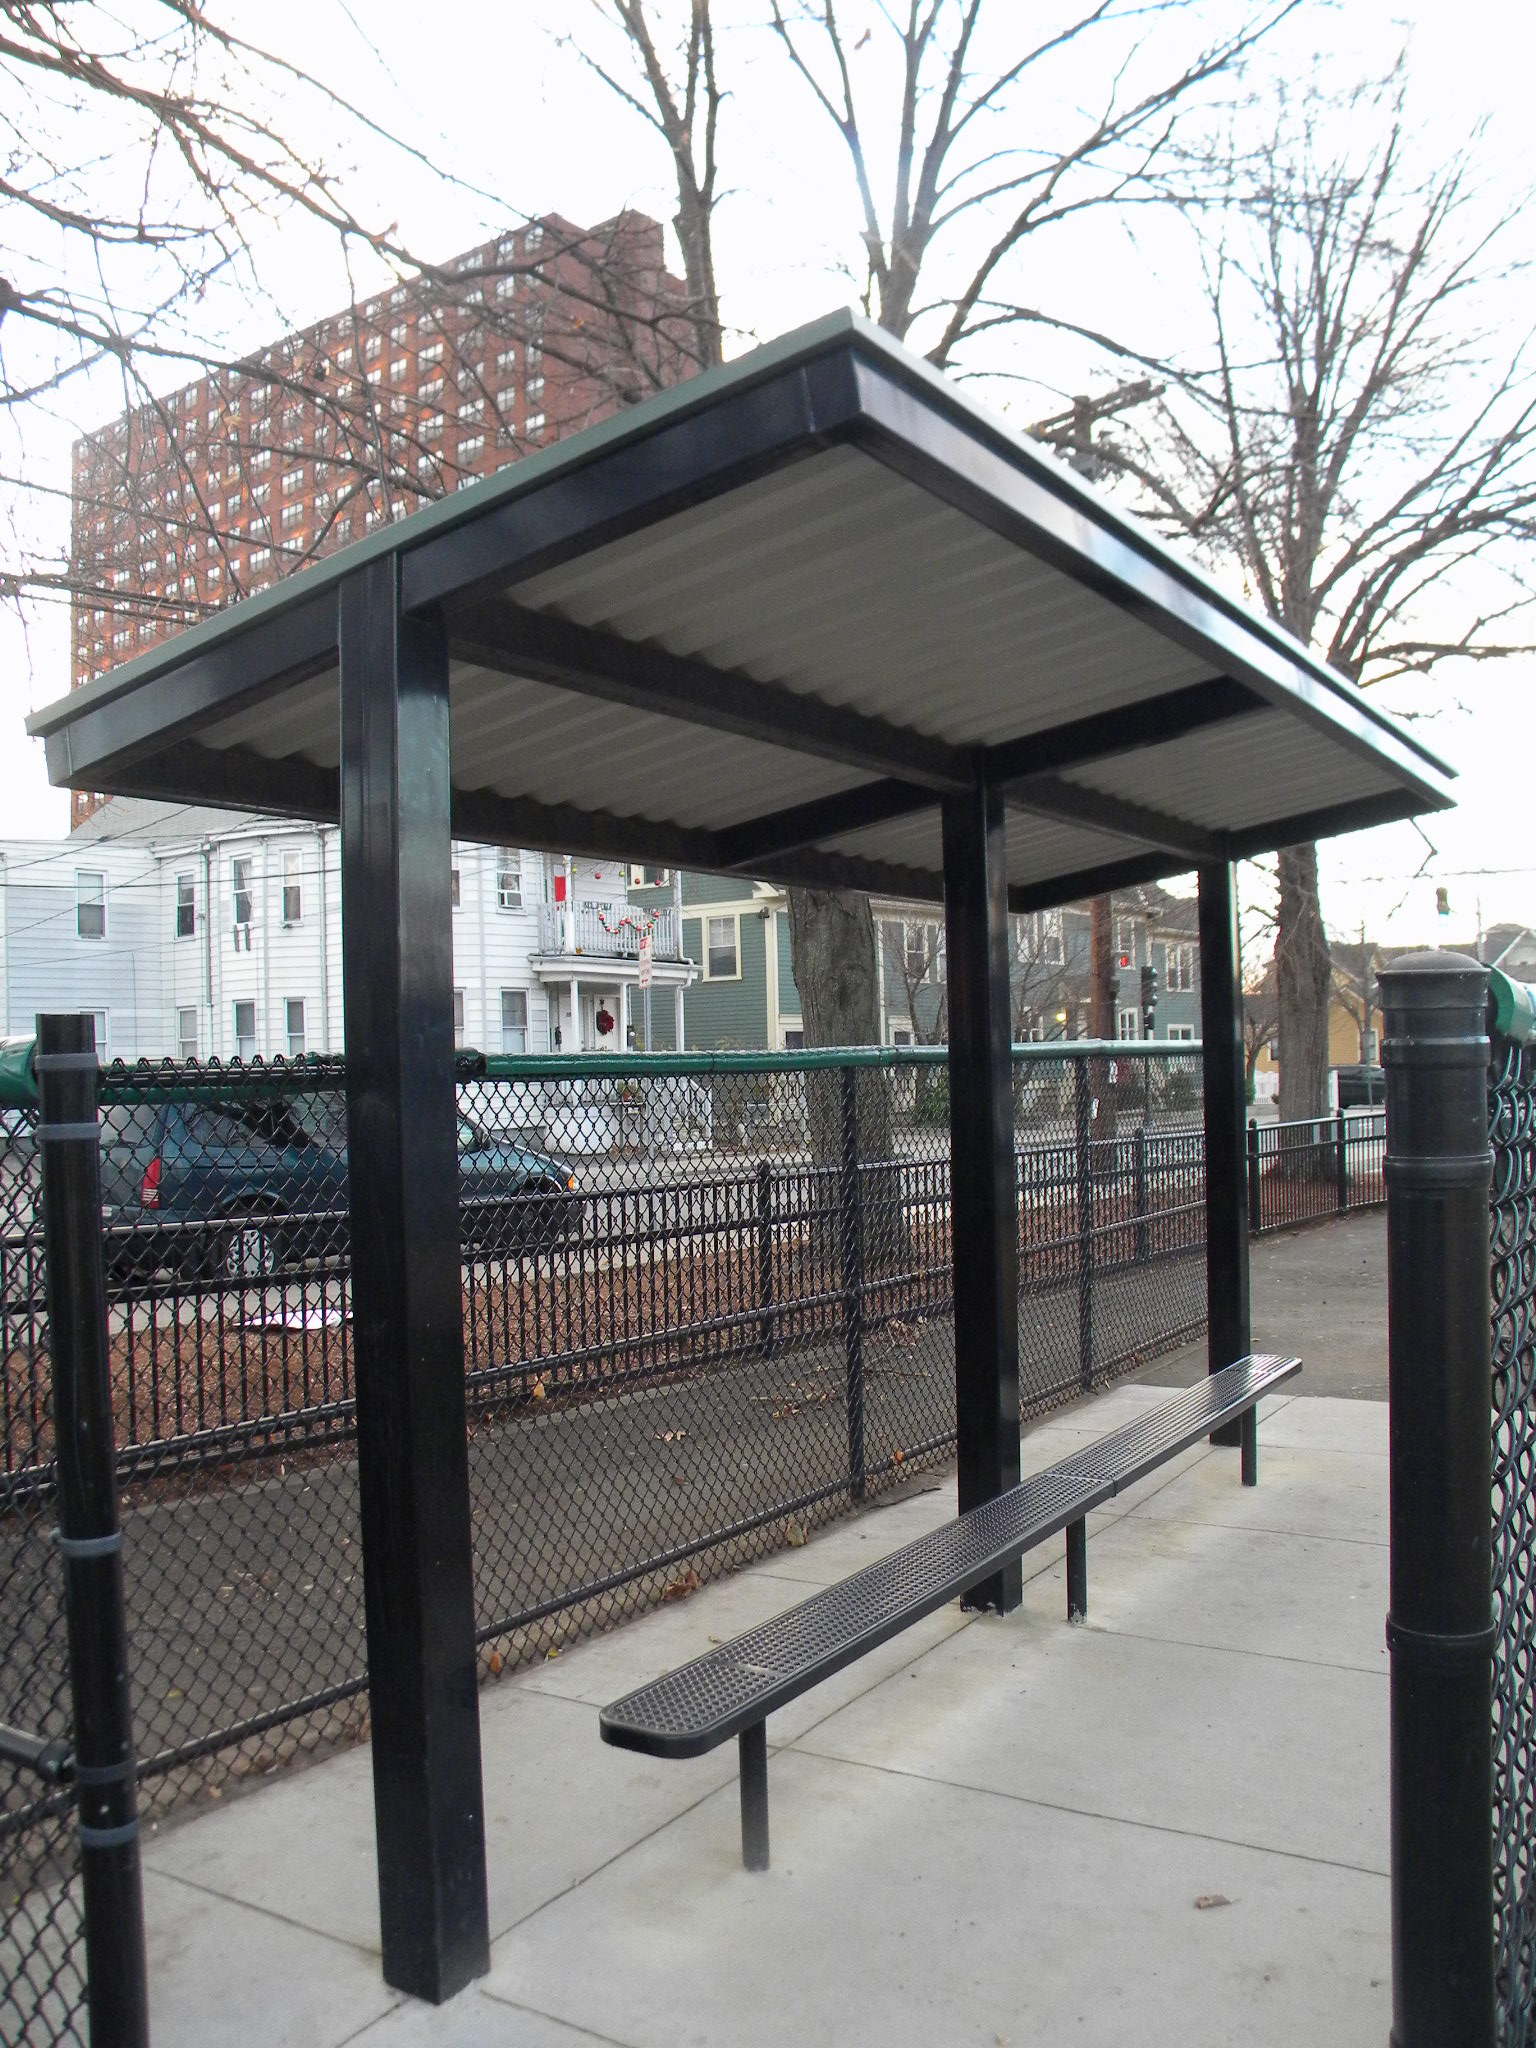 Dugout Shelter And Shade Structure Available In Many Sizes